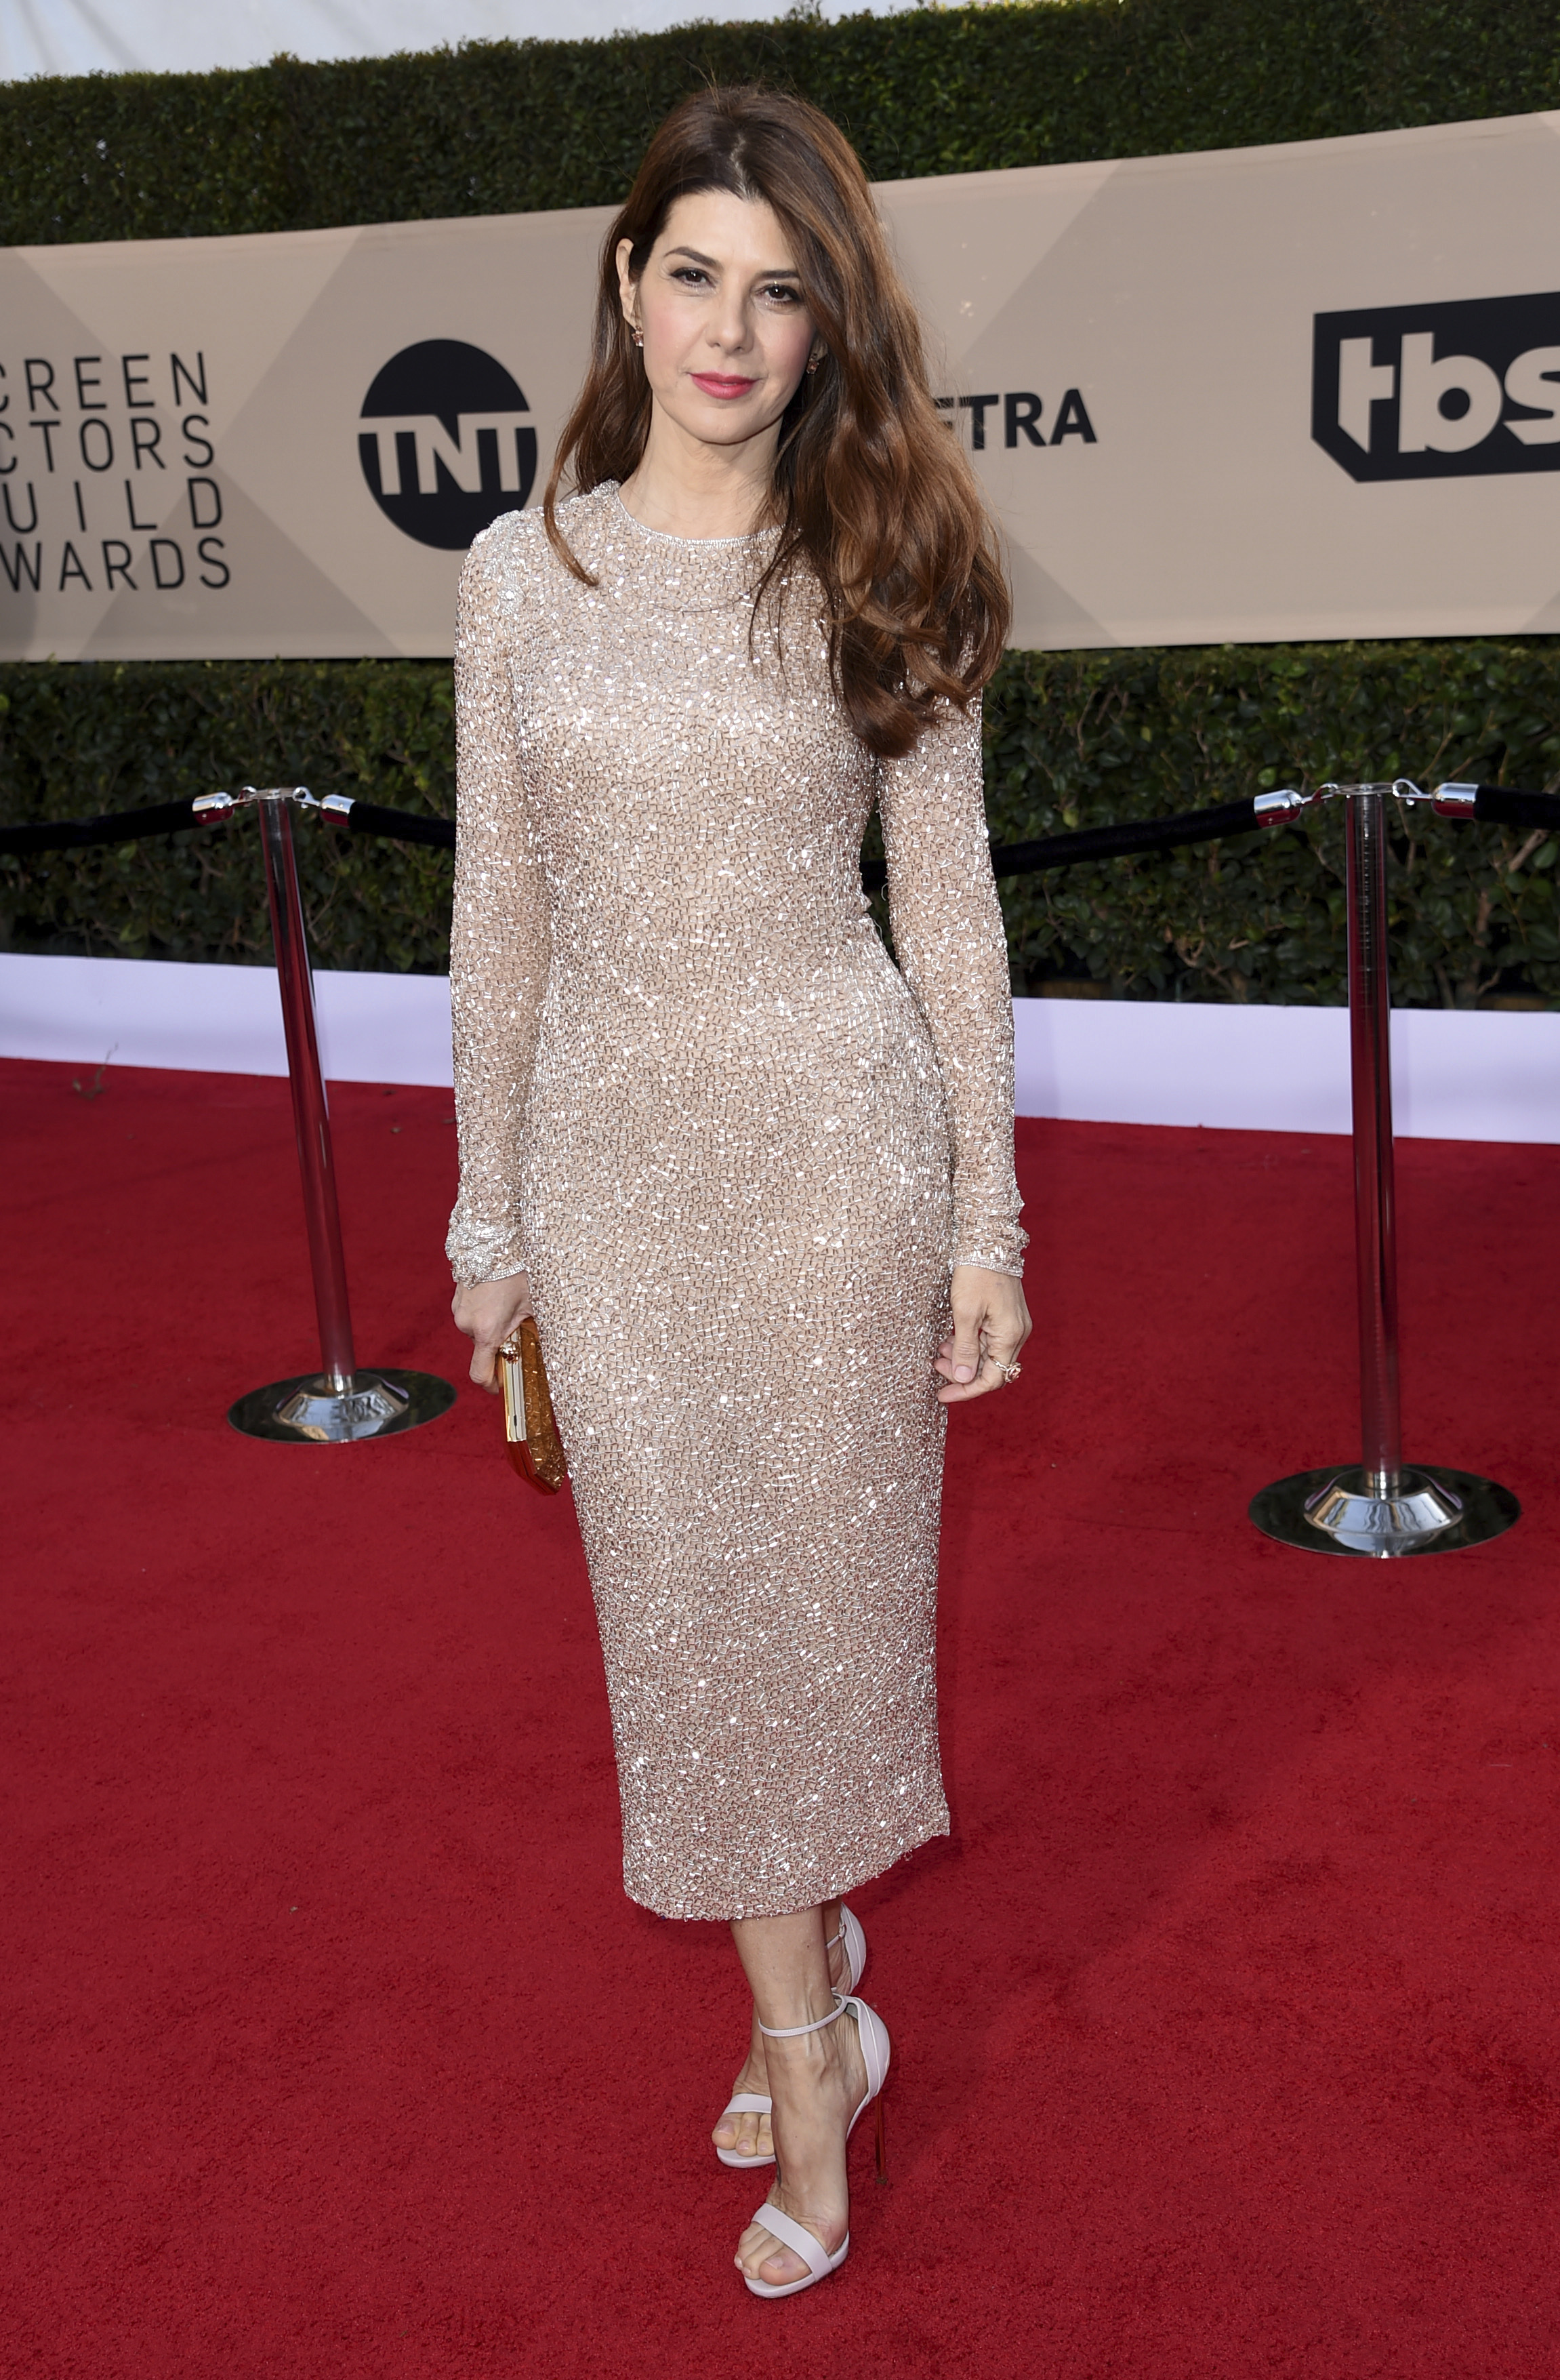 Marisa Tomei arrives at the 24th annual Screen Actors Guild Awards